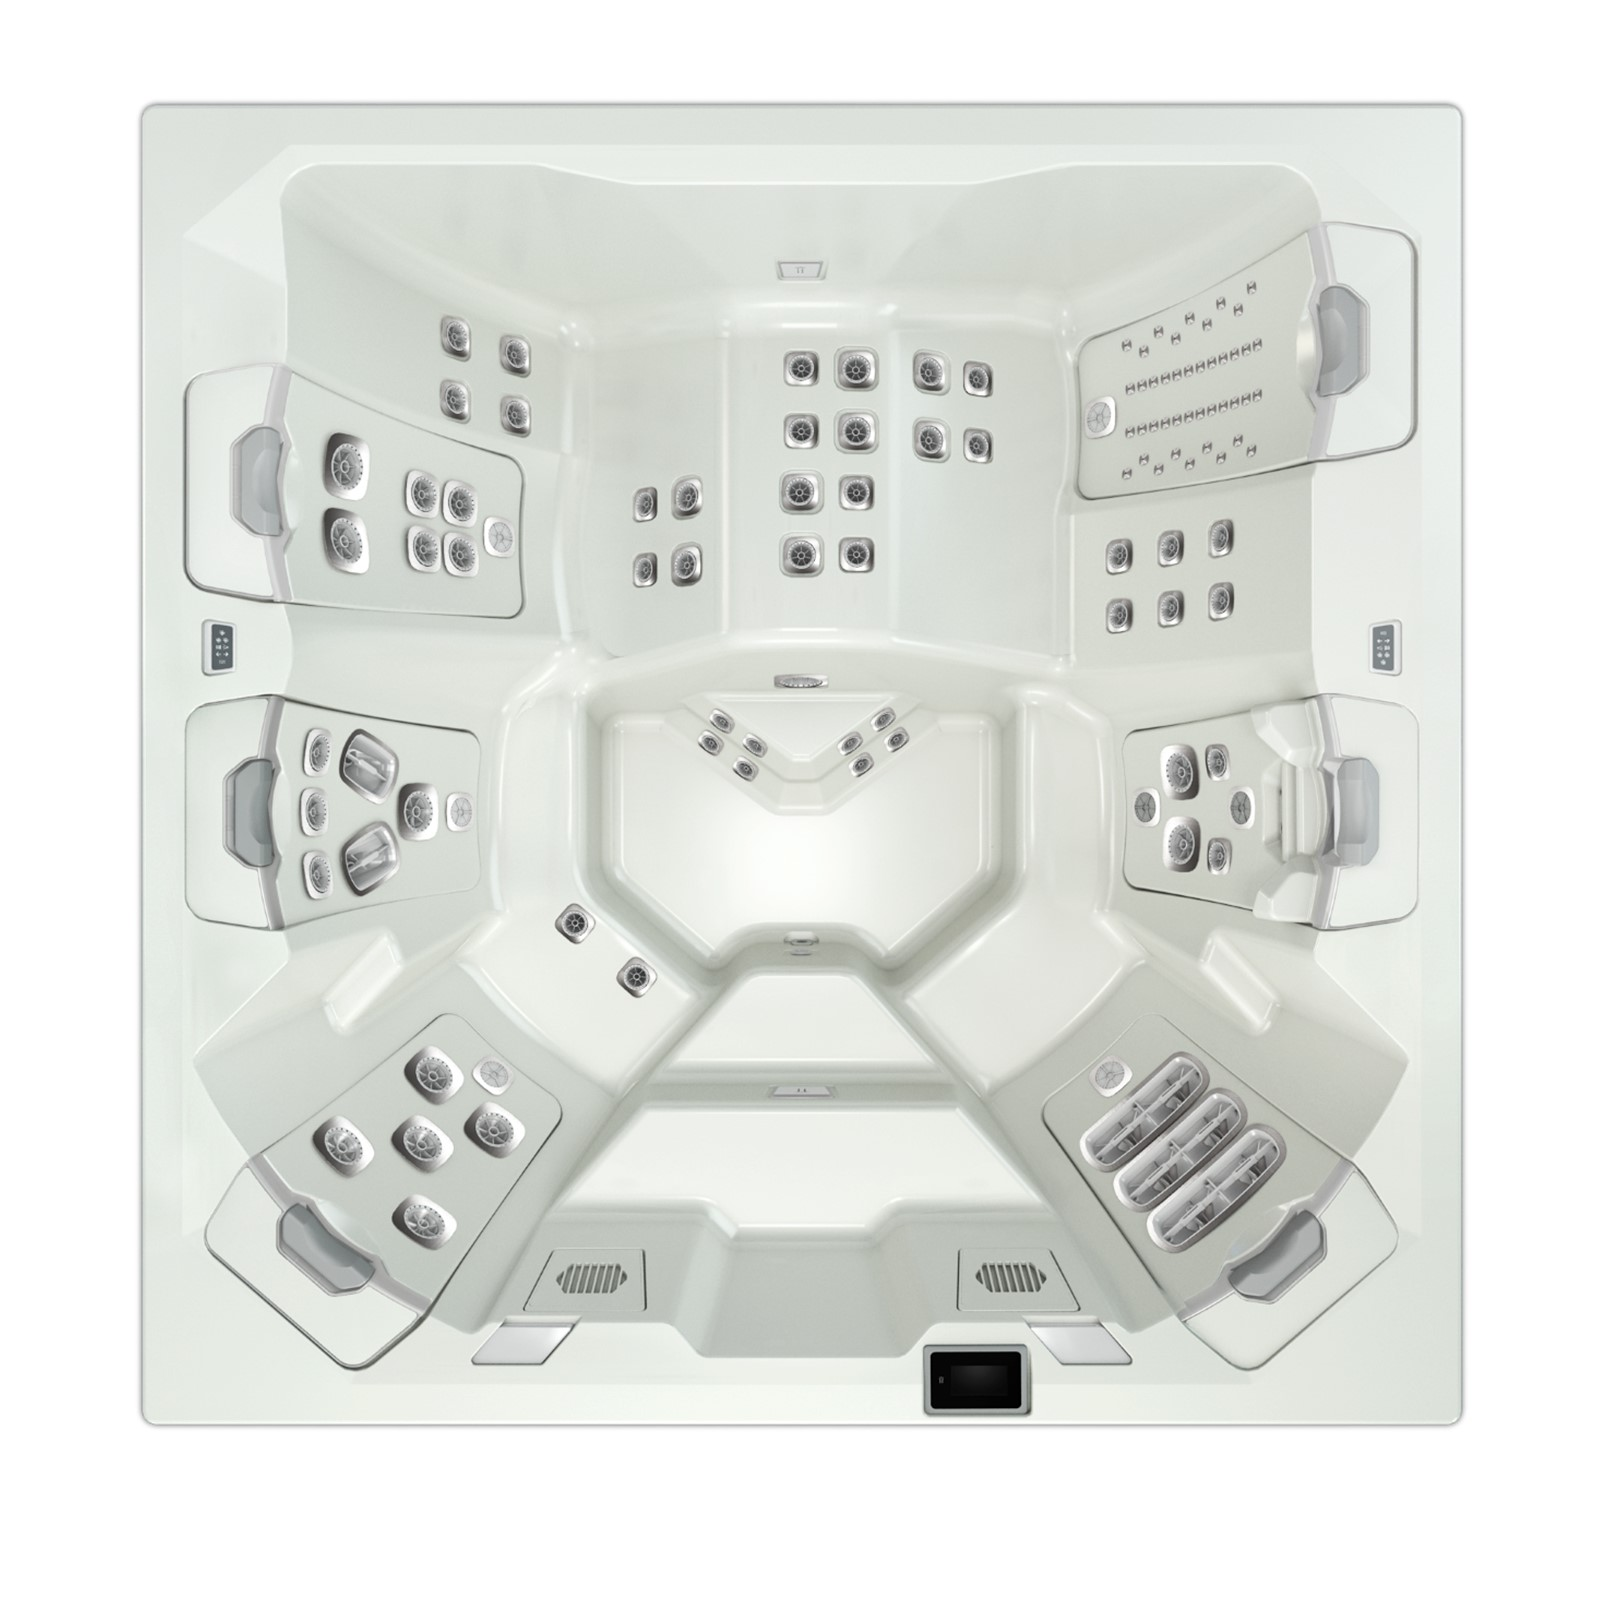 M-Series Elite Personalized Luxury Hot Tubs